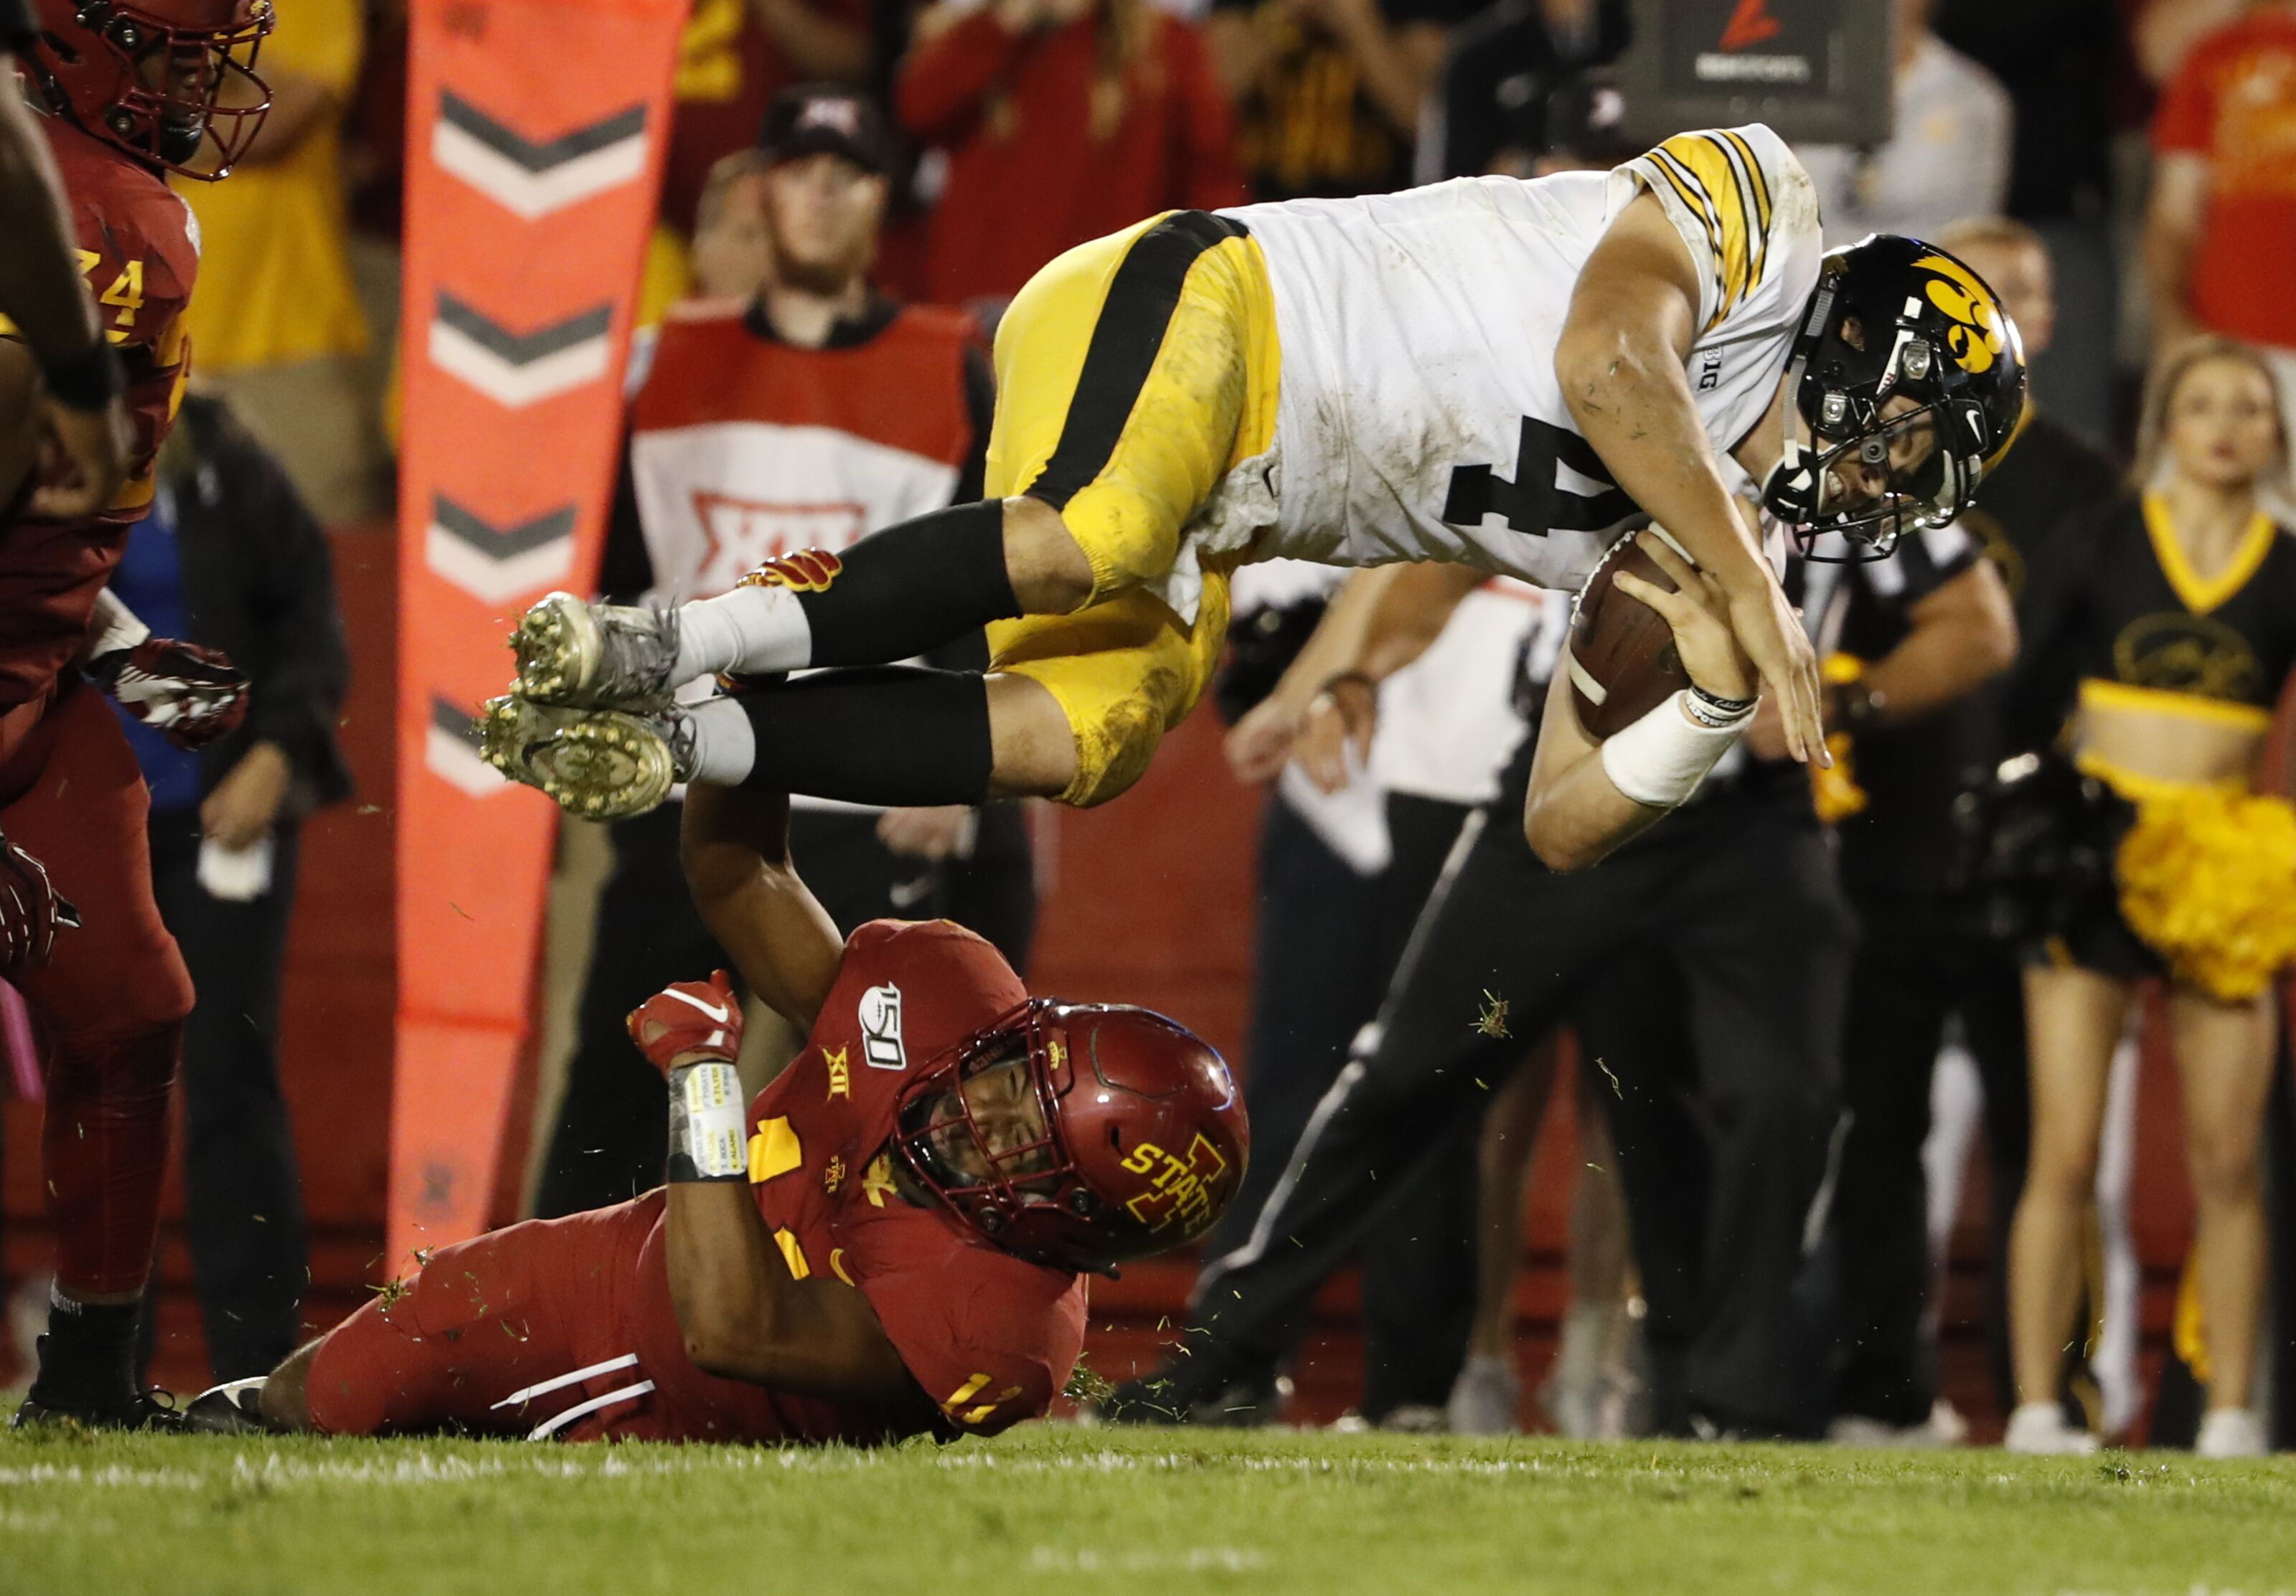 Iowa football: Hawk's bye week couldn't come at a better time